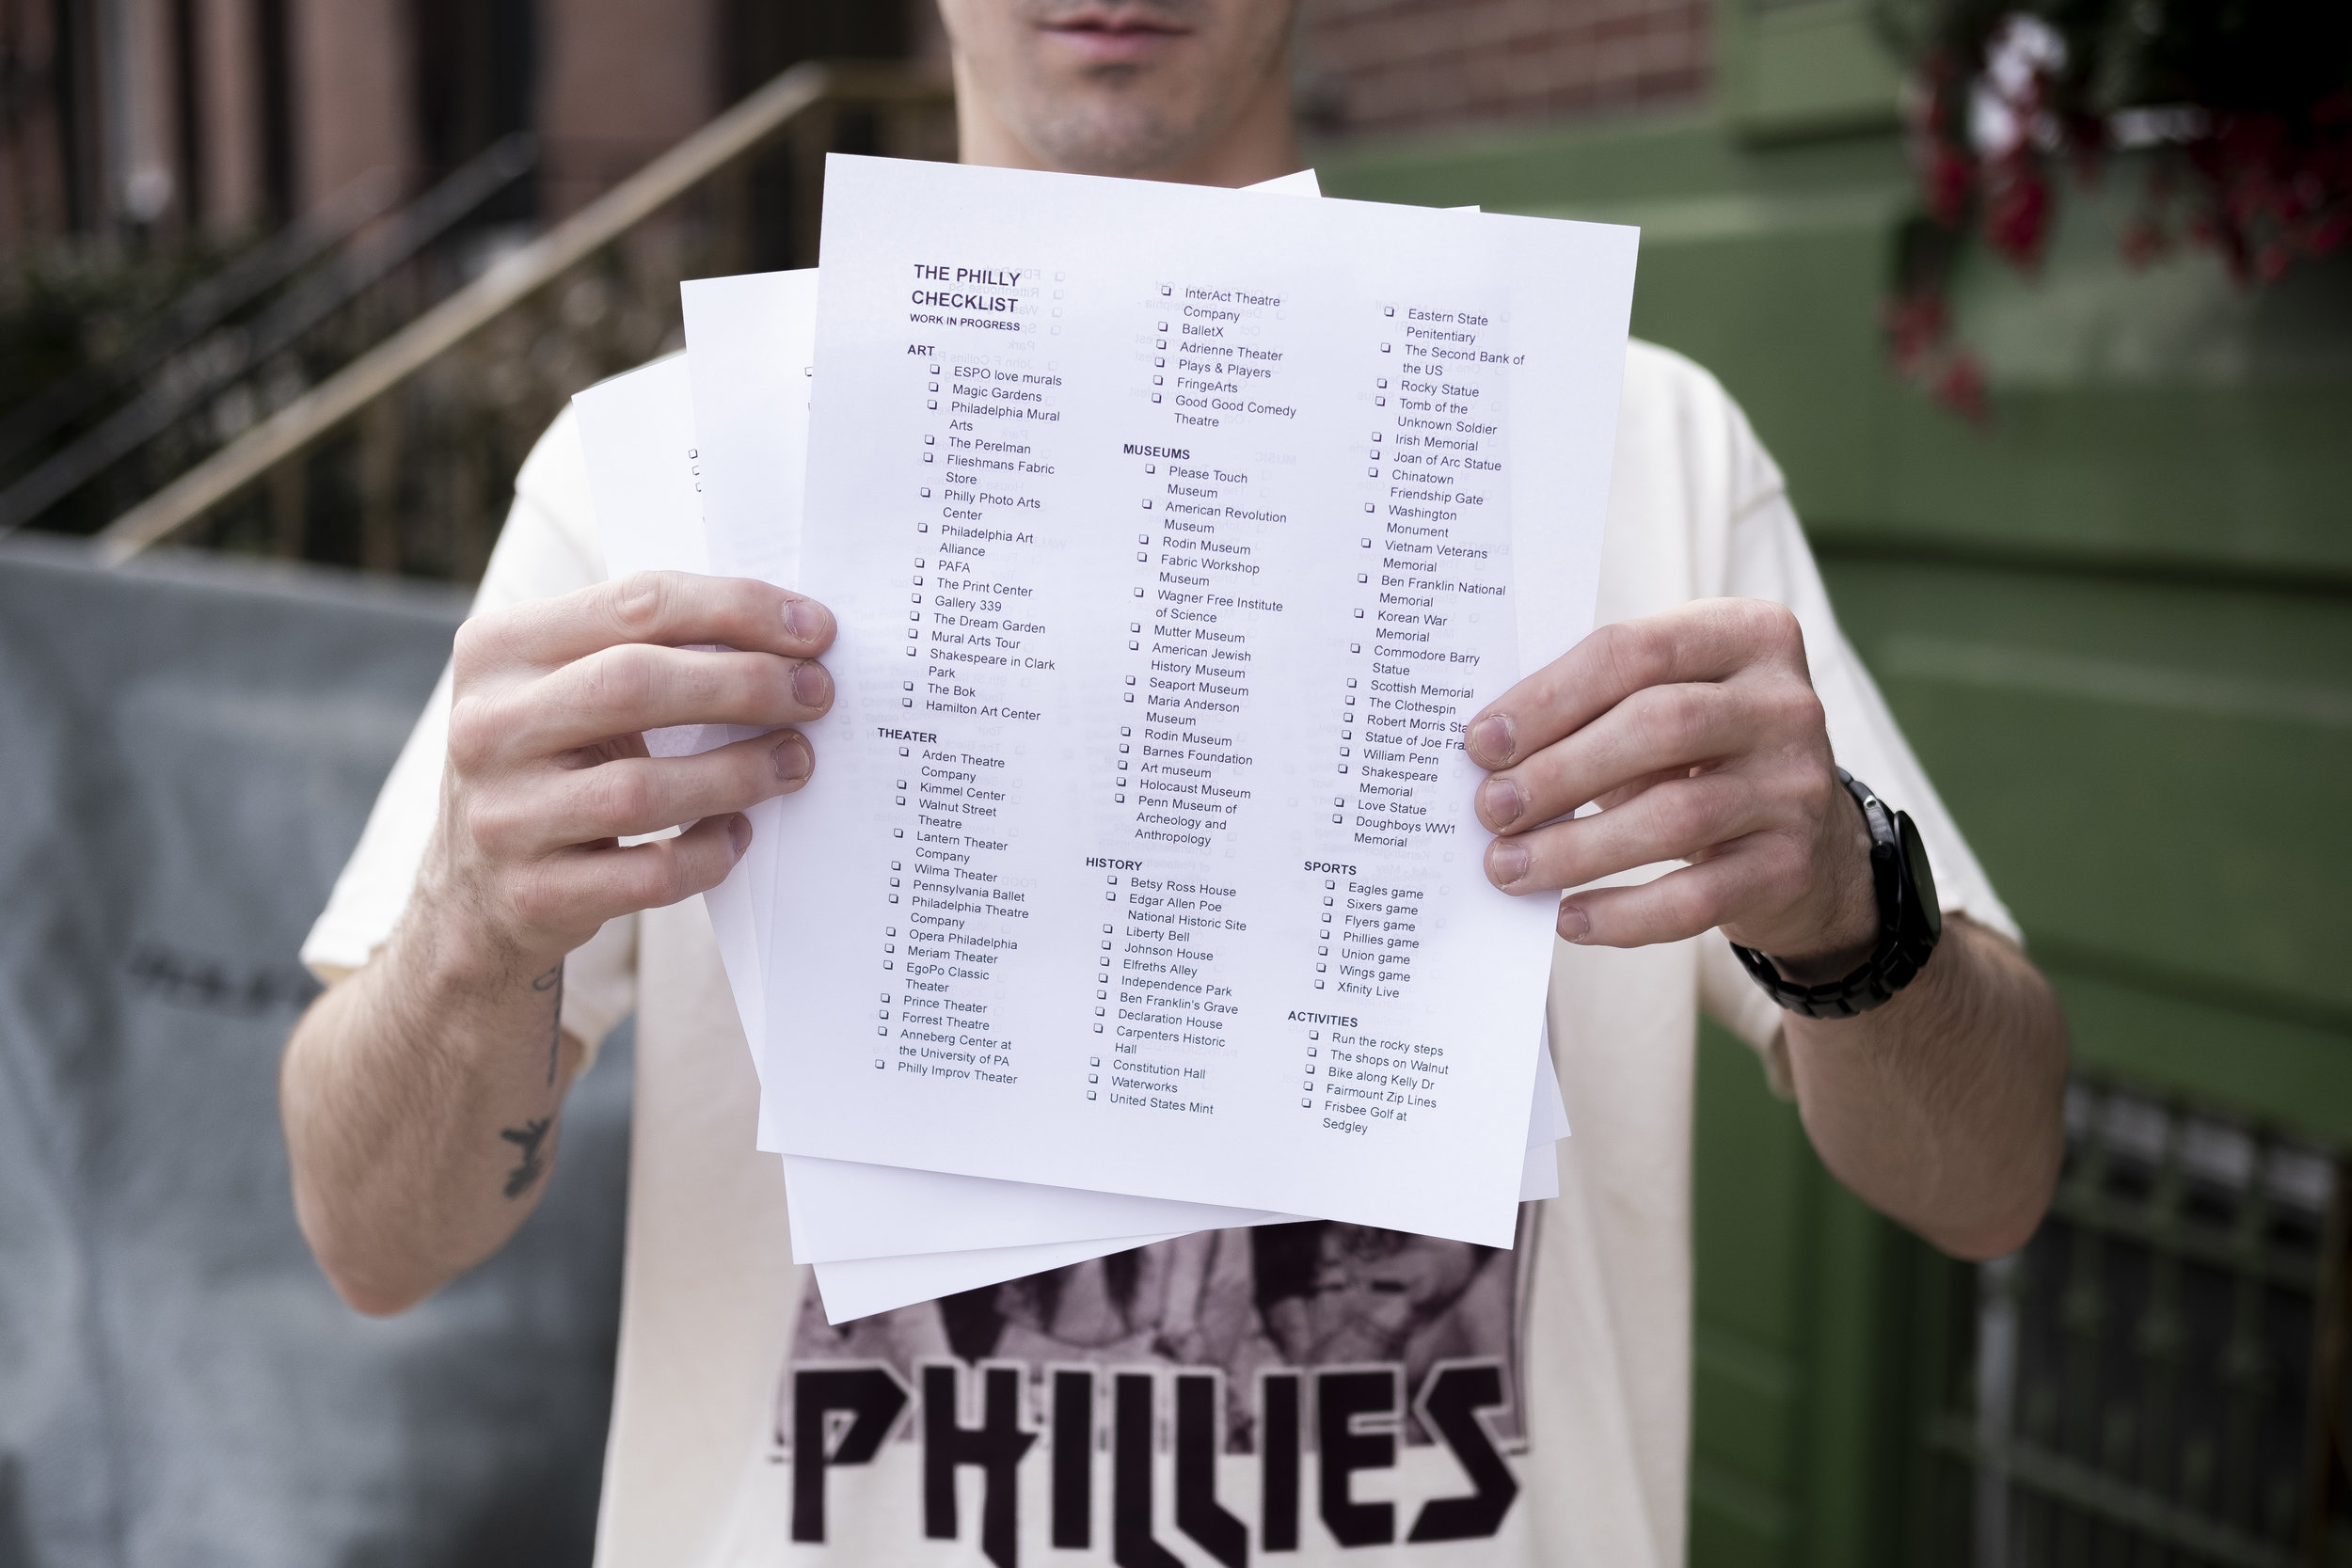 2019_THE LIST_PHILLY CHECKLIST_1.jpg